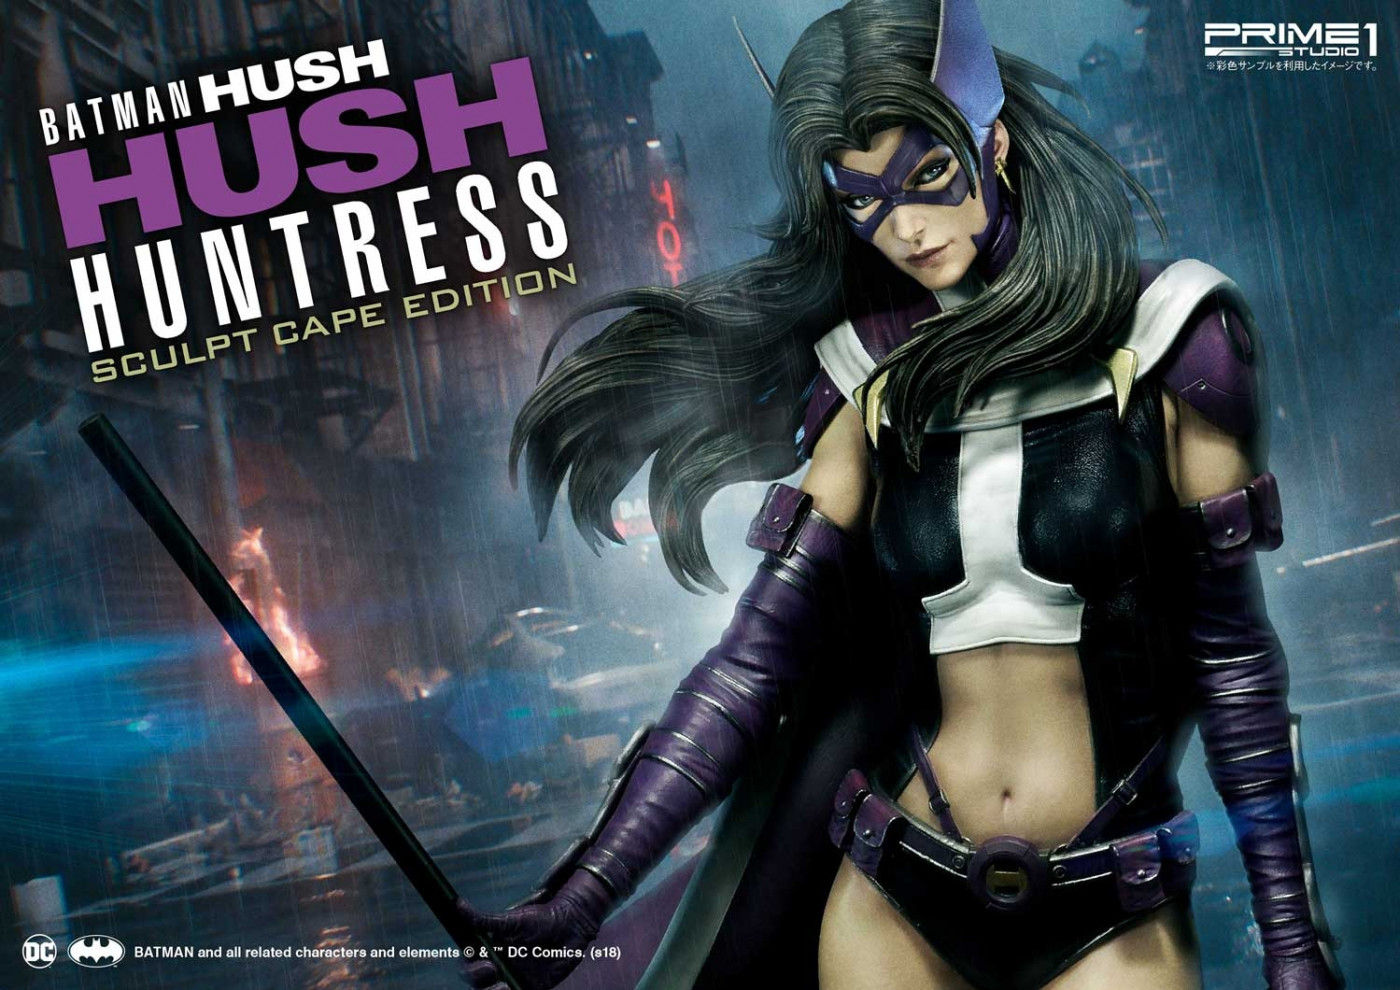 Museum Masterline Batman Hush Comics Huntress Sculpt Cape By Prime 1 Studio